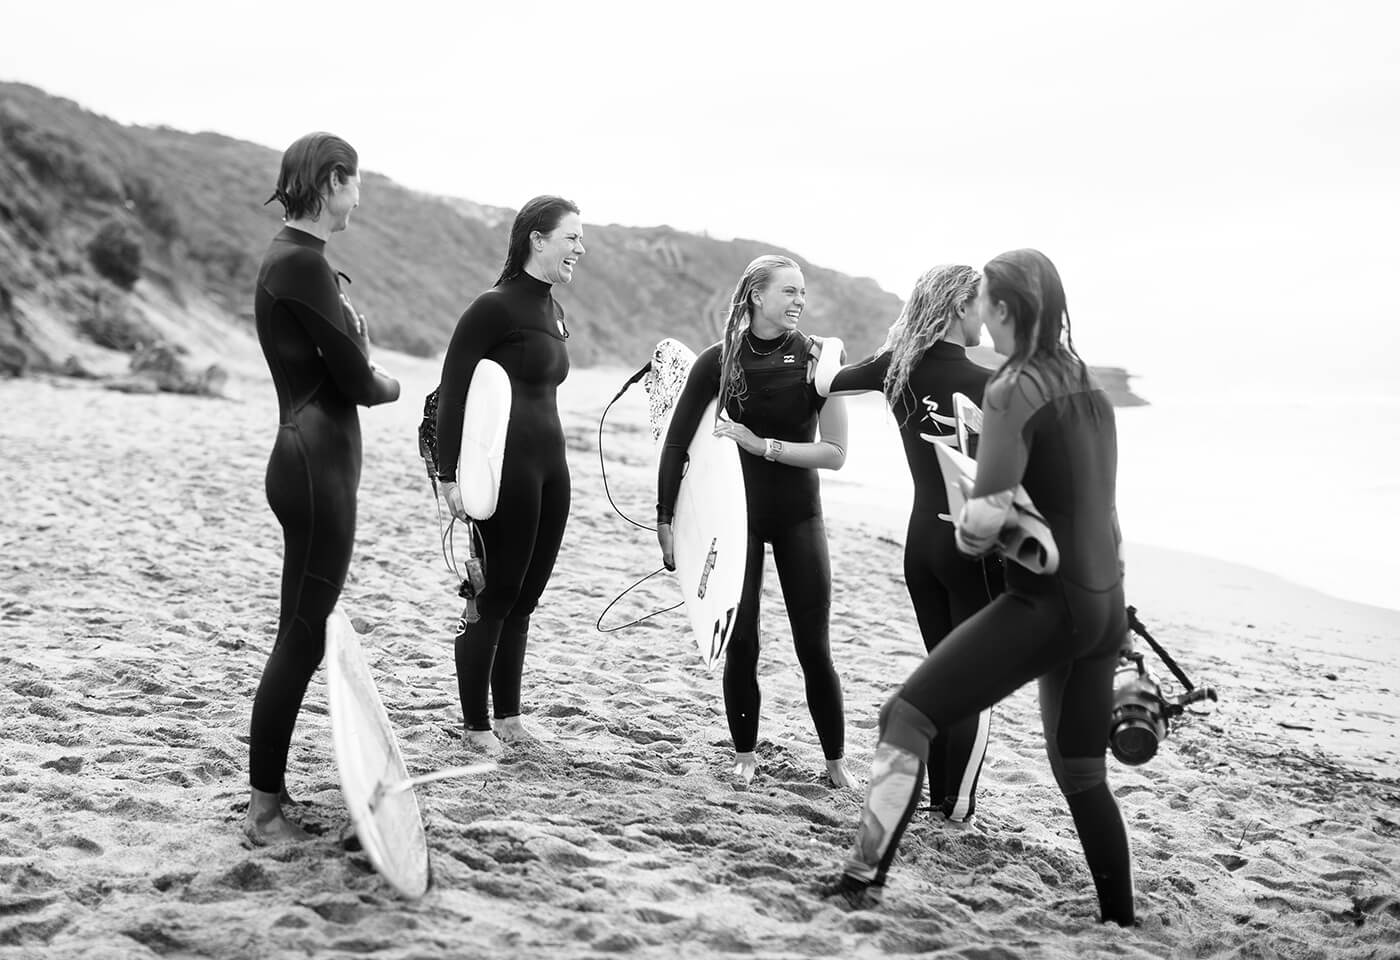 black and white photo of Fran Miller, Macy Callaghan, Sally Fitzgibbons, Brooke Farris and Belinda Baggs by Ed Sloane